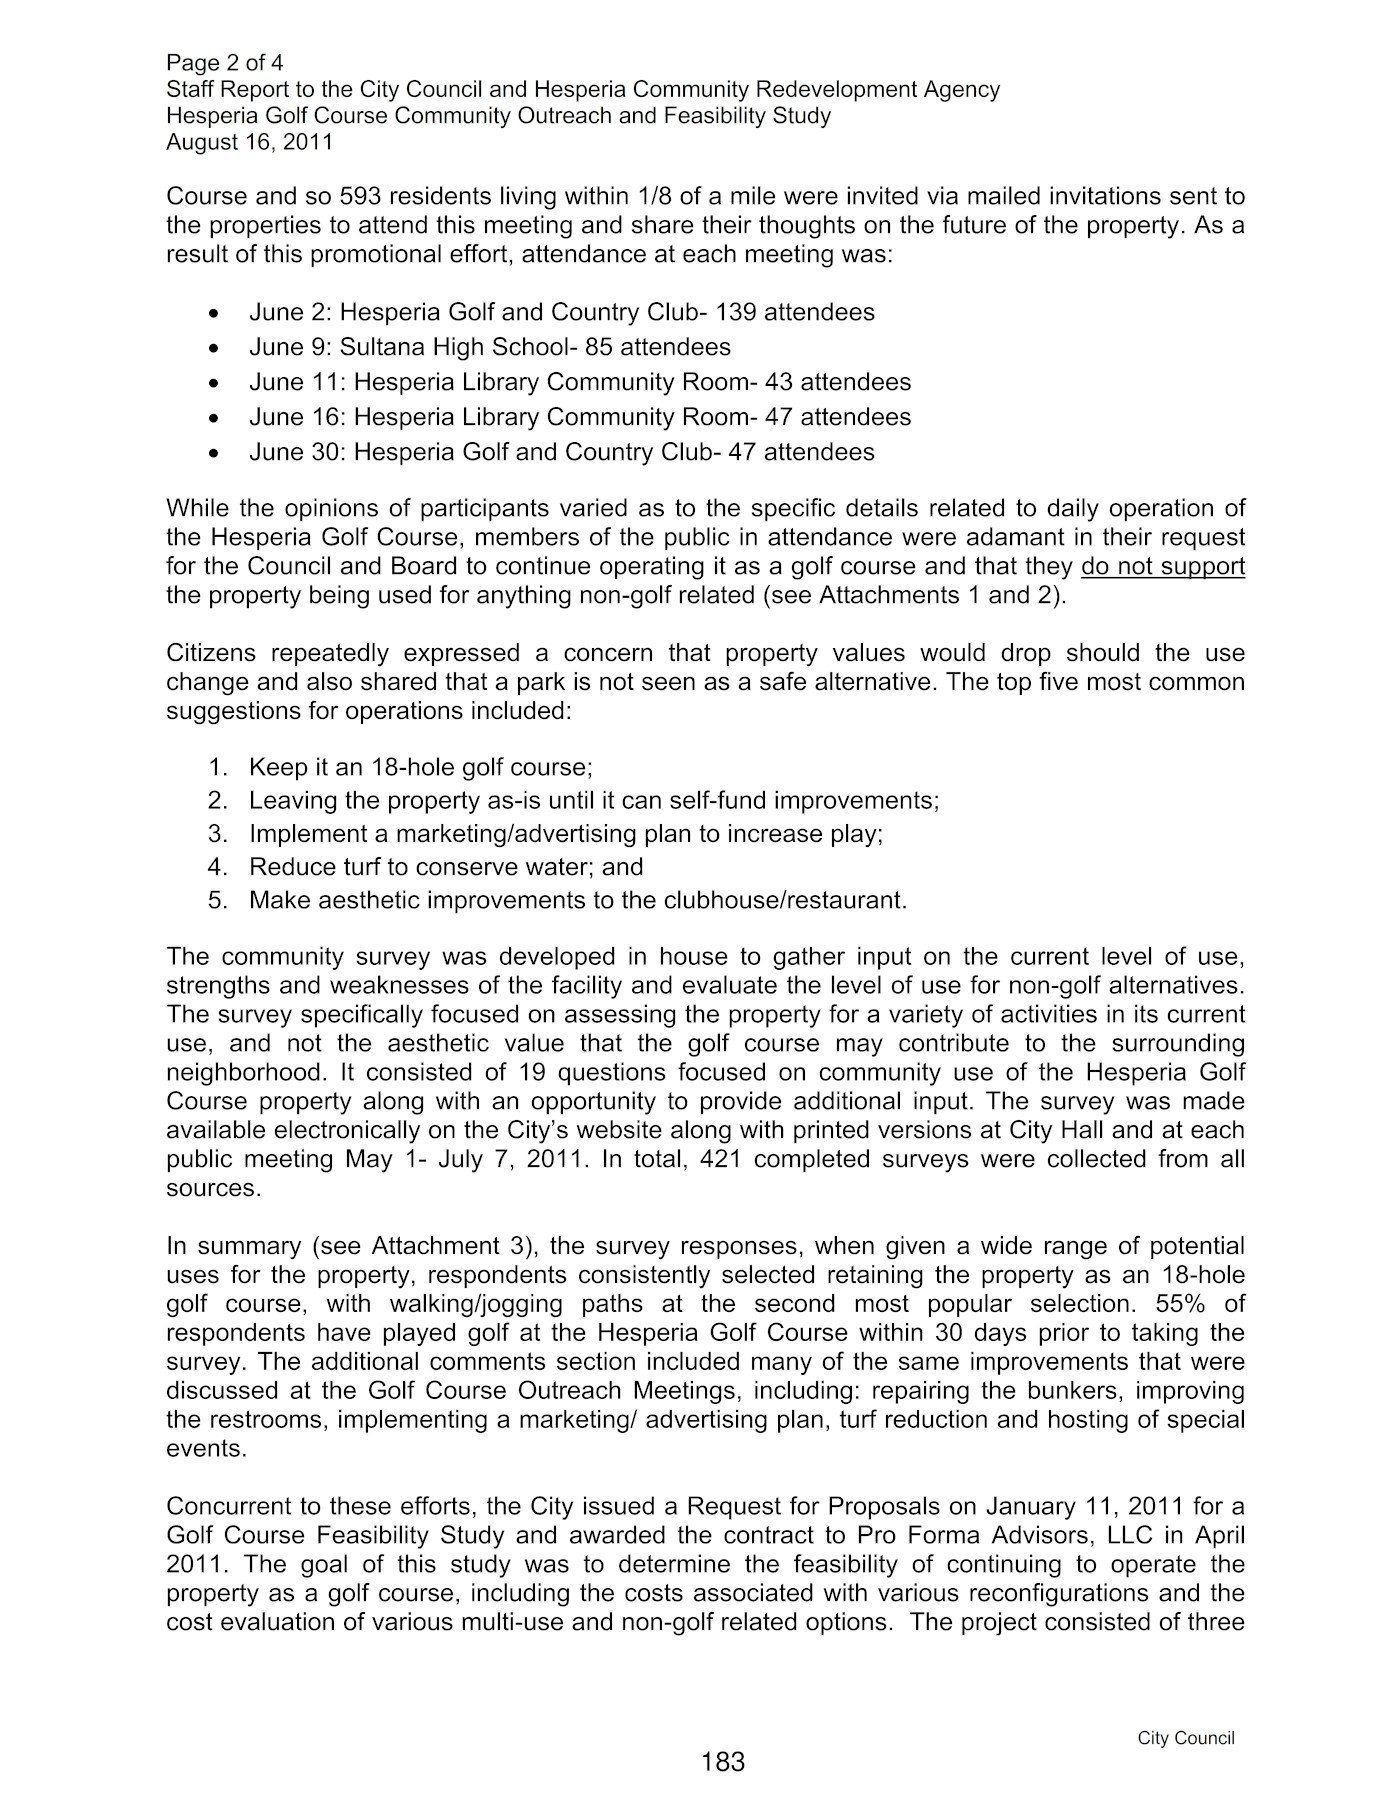 Hesperia Golf 8-16-2011 Council Meeting Staff Report 2 of 4